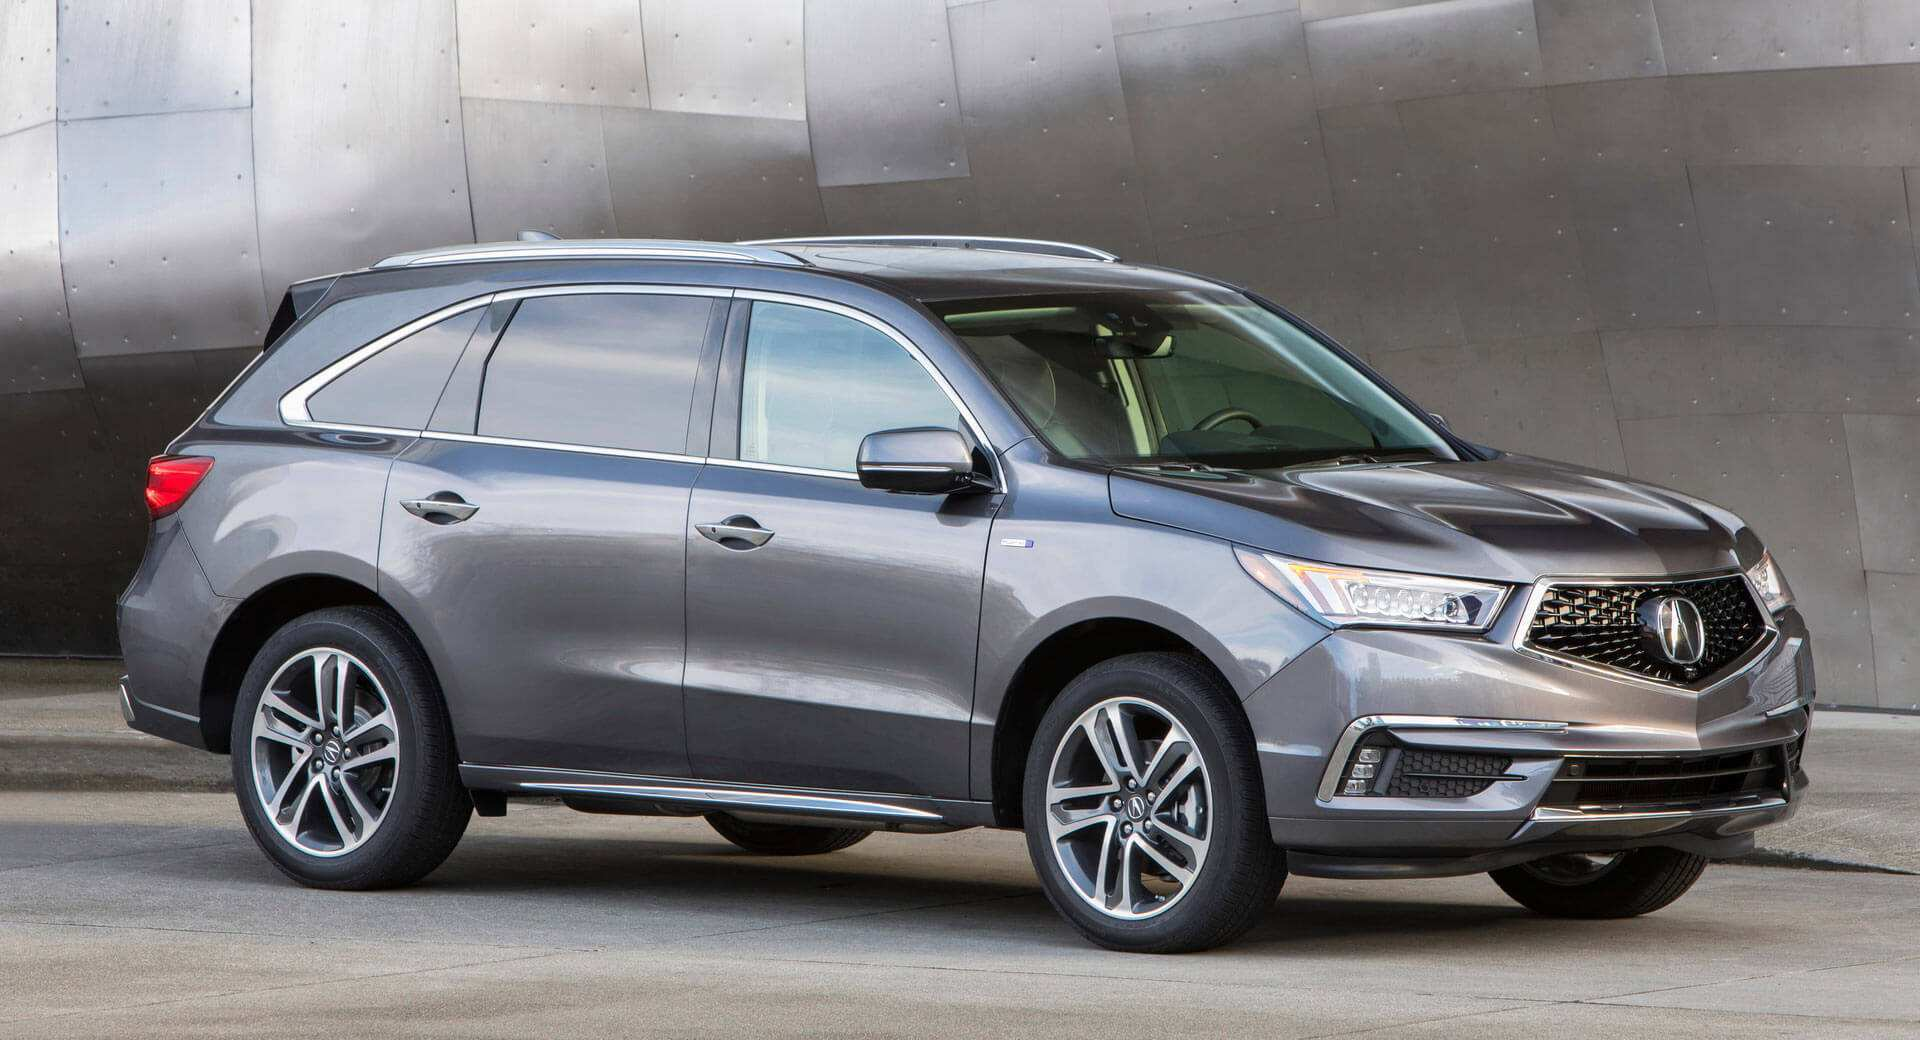 89 New Acura Mdx 2020 Configurations